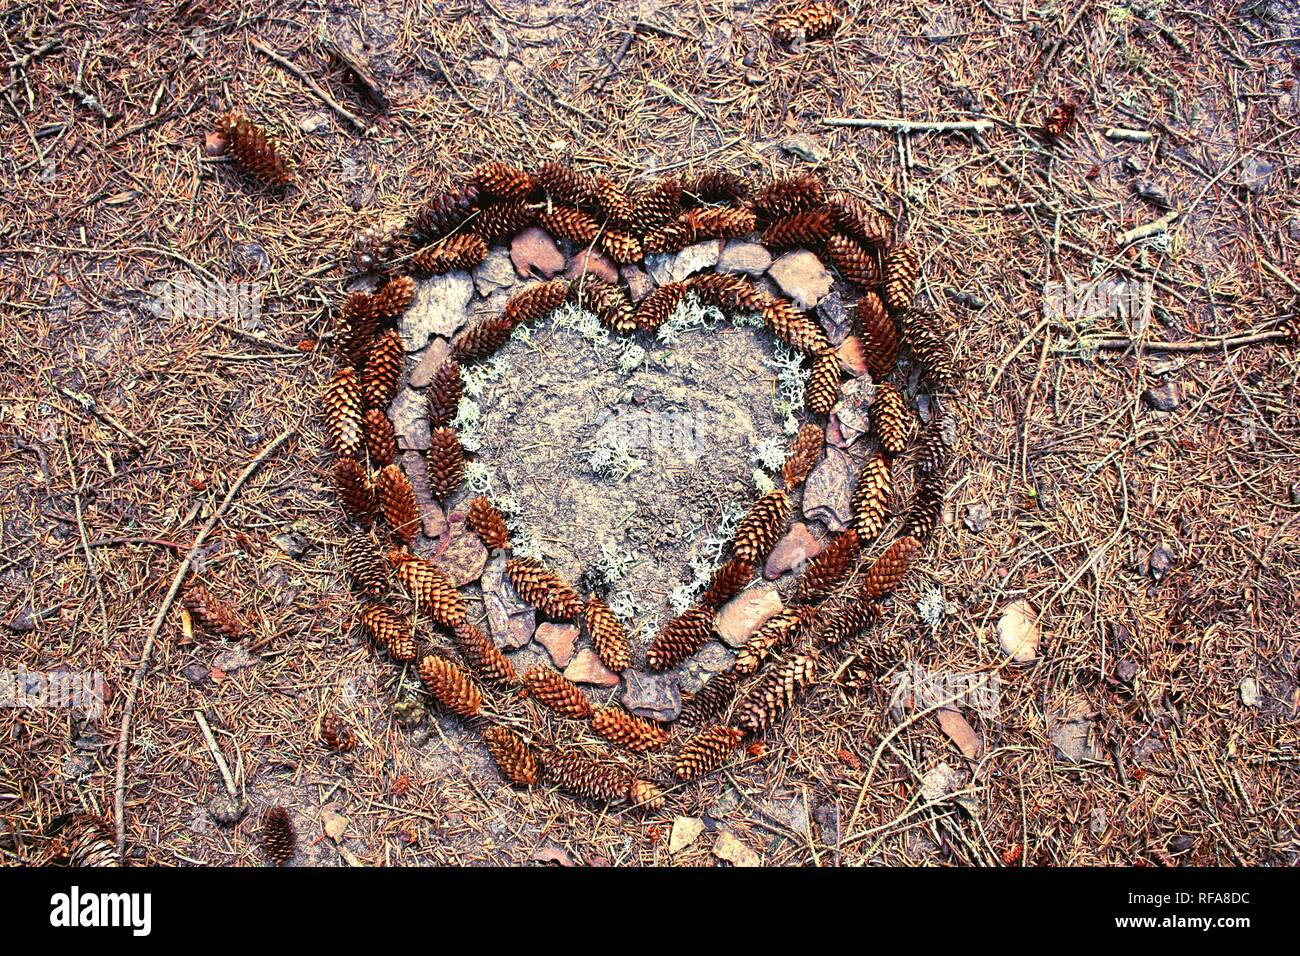 Heart of pinecones and natural objects - Stock Image